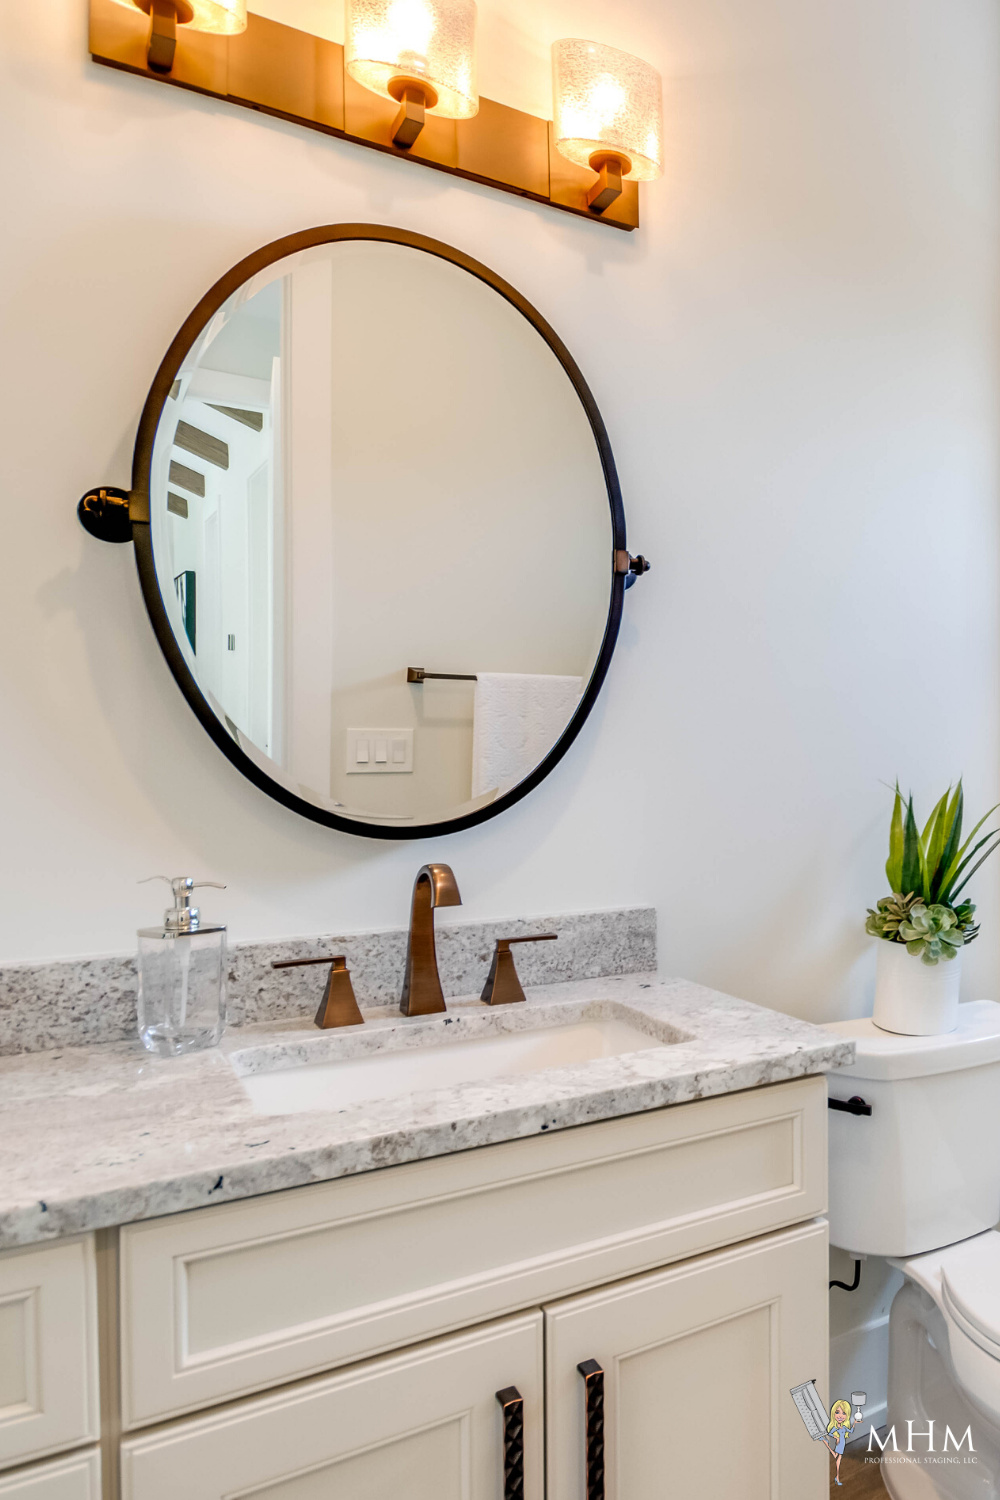 #beautifulhomes #homeinspo #dreamhome #homelove #homestaging #staginghomes #luxurystaging #luxuryhomes #luxurylistings #stagingandstyling #homedesign #homegoals